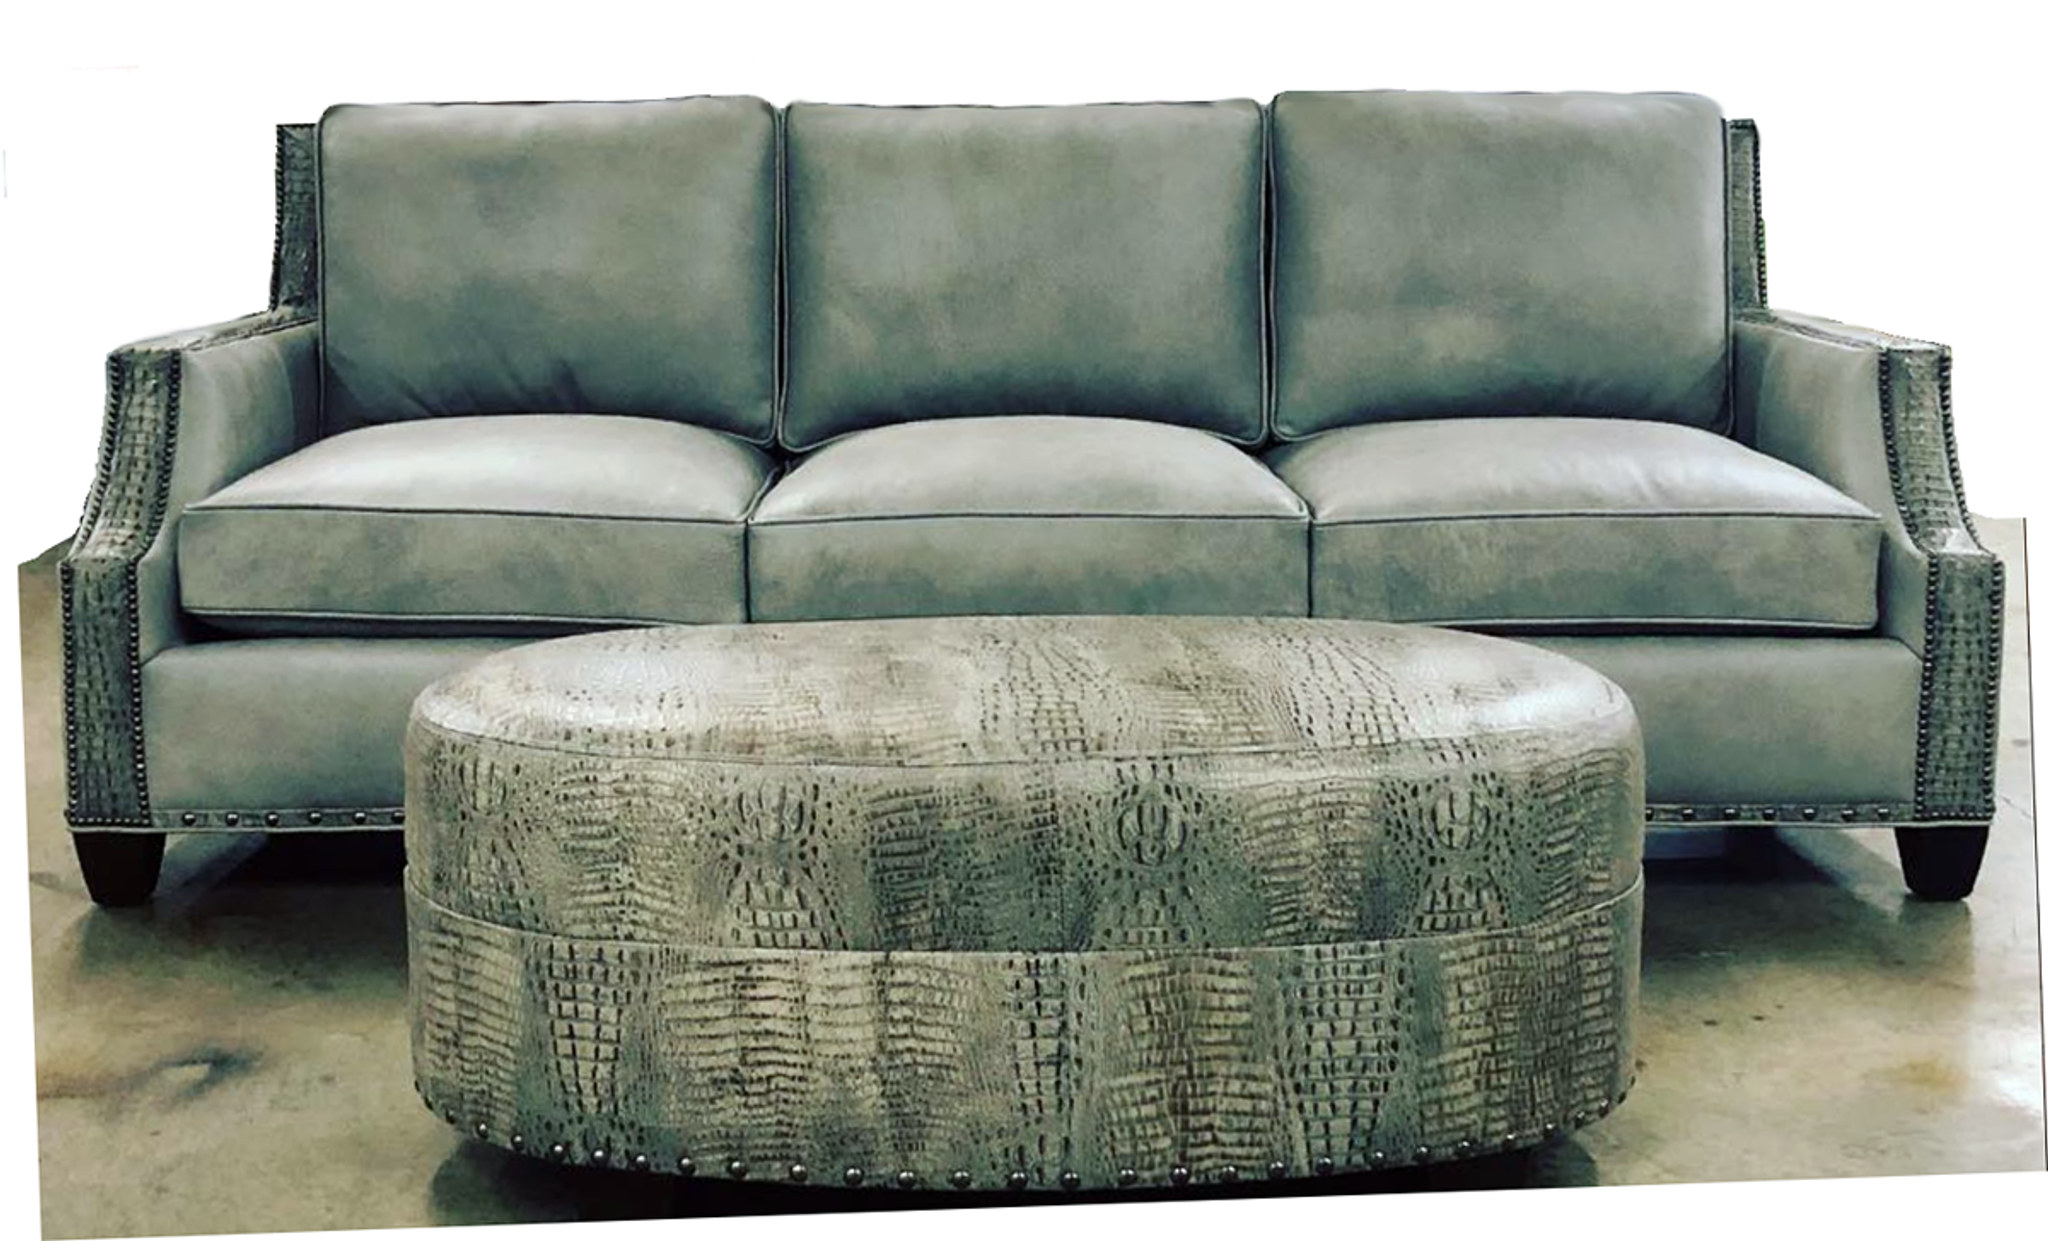 Wondrous Maddux Reclining Sofa Home And Textiles Andrewgaddart Wooden Chair Designs For Living Room Andrewgaddartcom